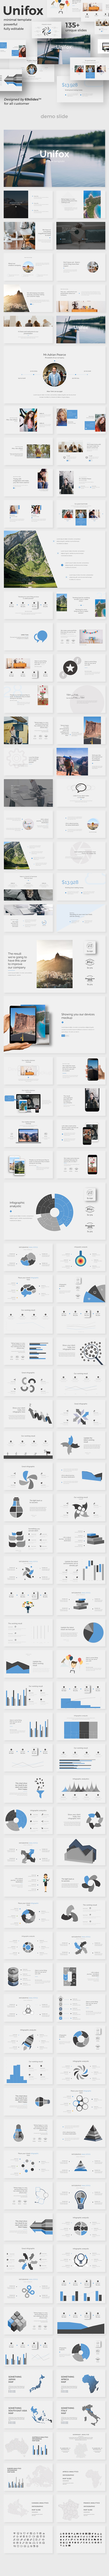 Unifox Creative Powerpoint Template - Creative PowerPoint Templates